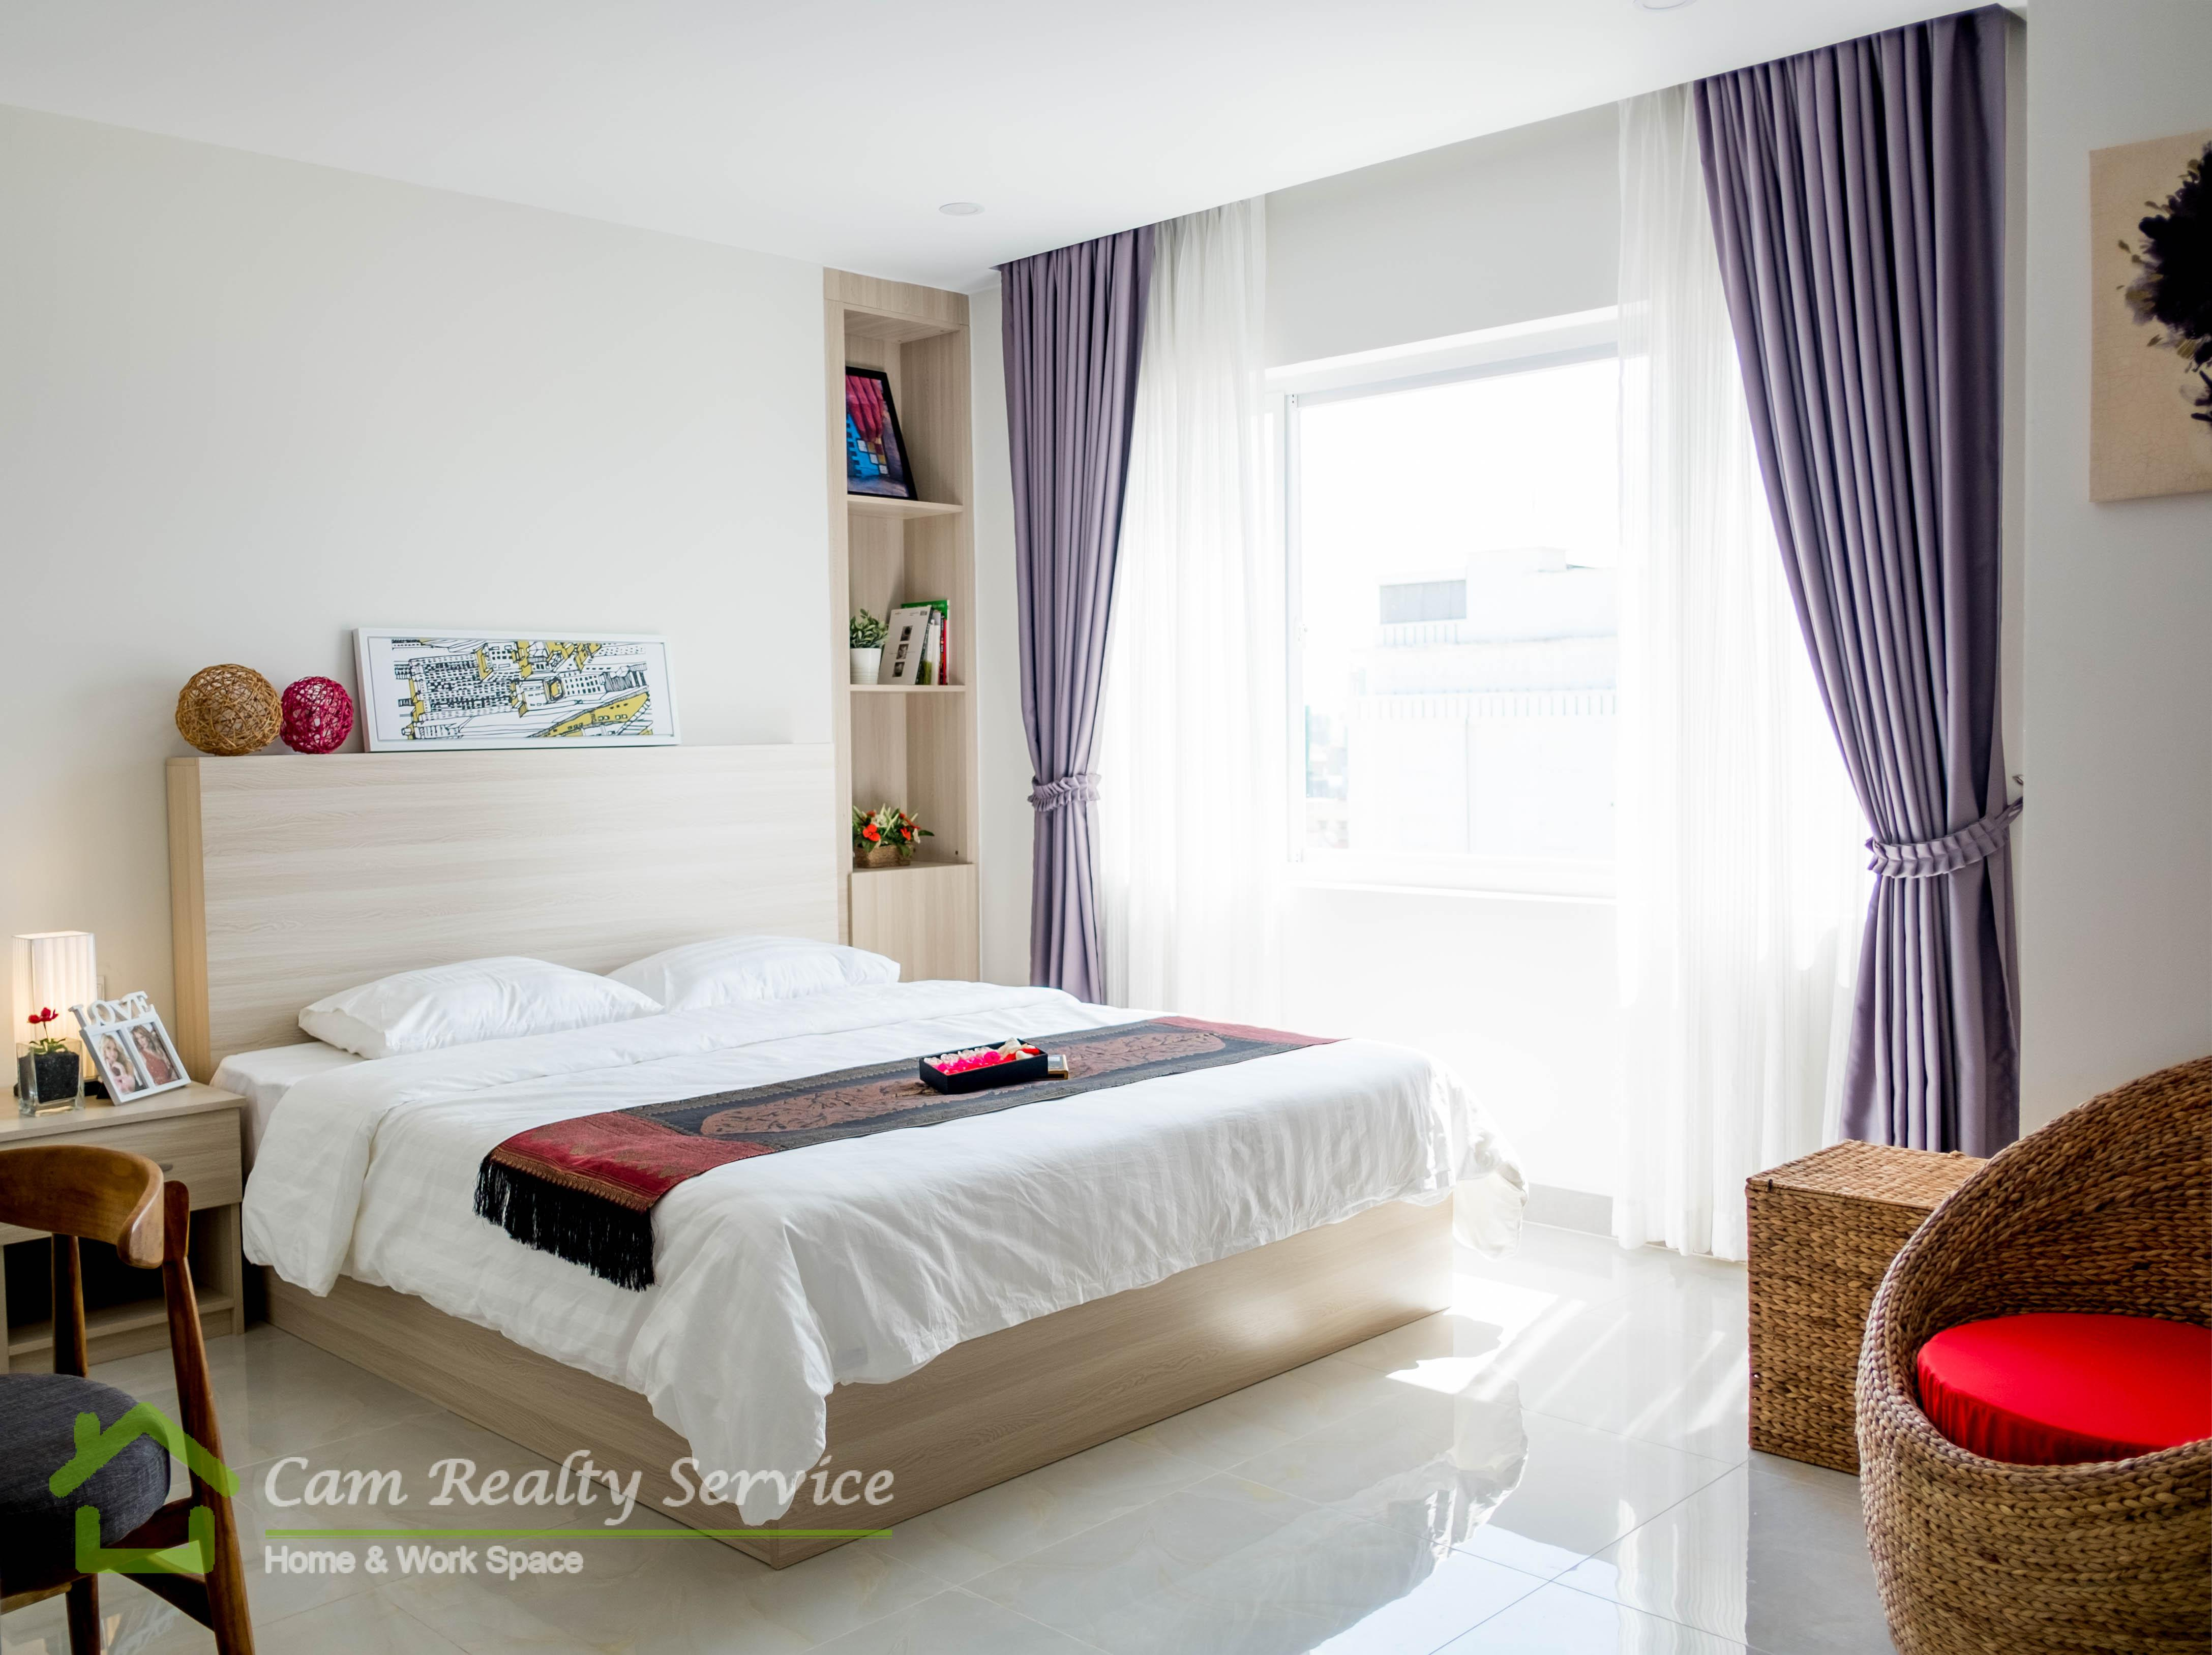 Russian market area| Modern style studio serviced apartment (No kitchen) for rent| 430$/month